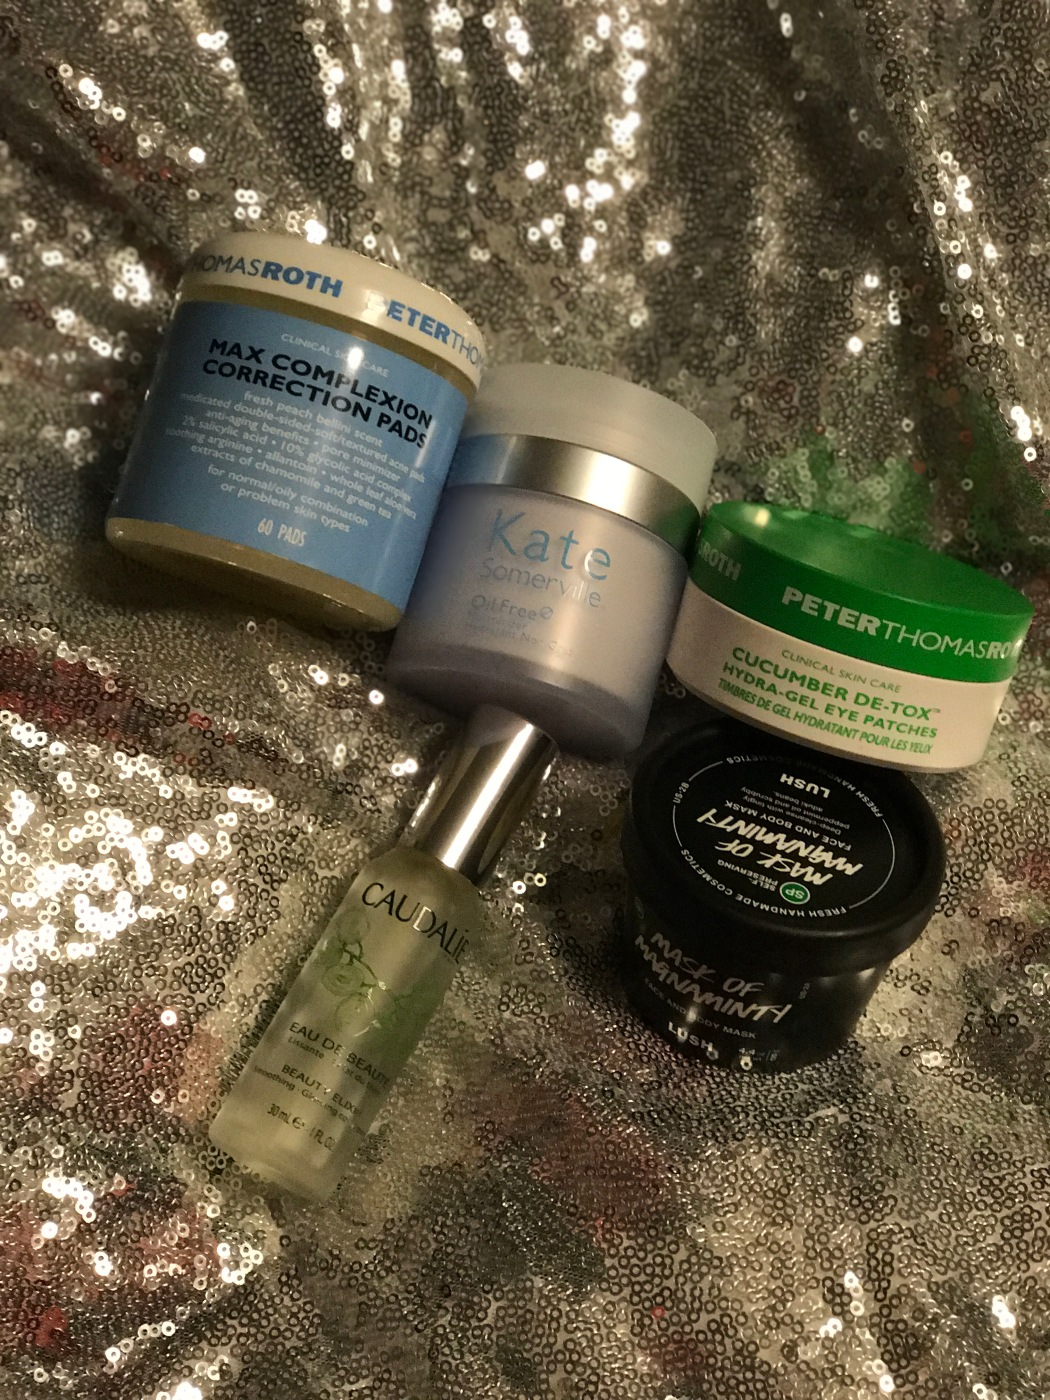 How to Take Care of Your Skin After Vacation